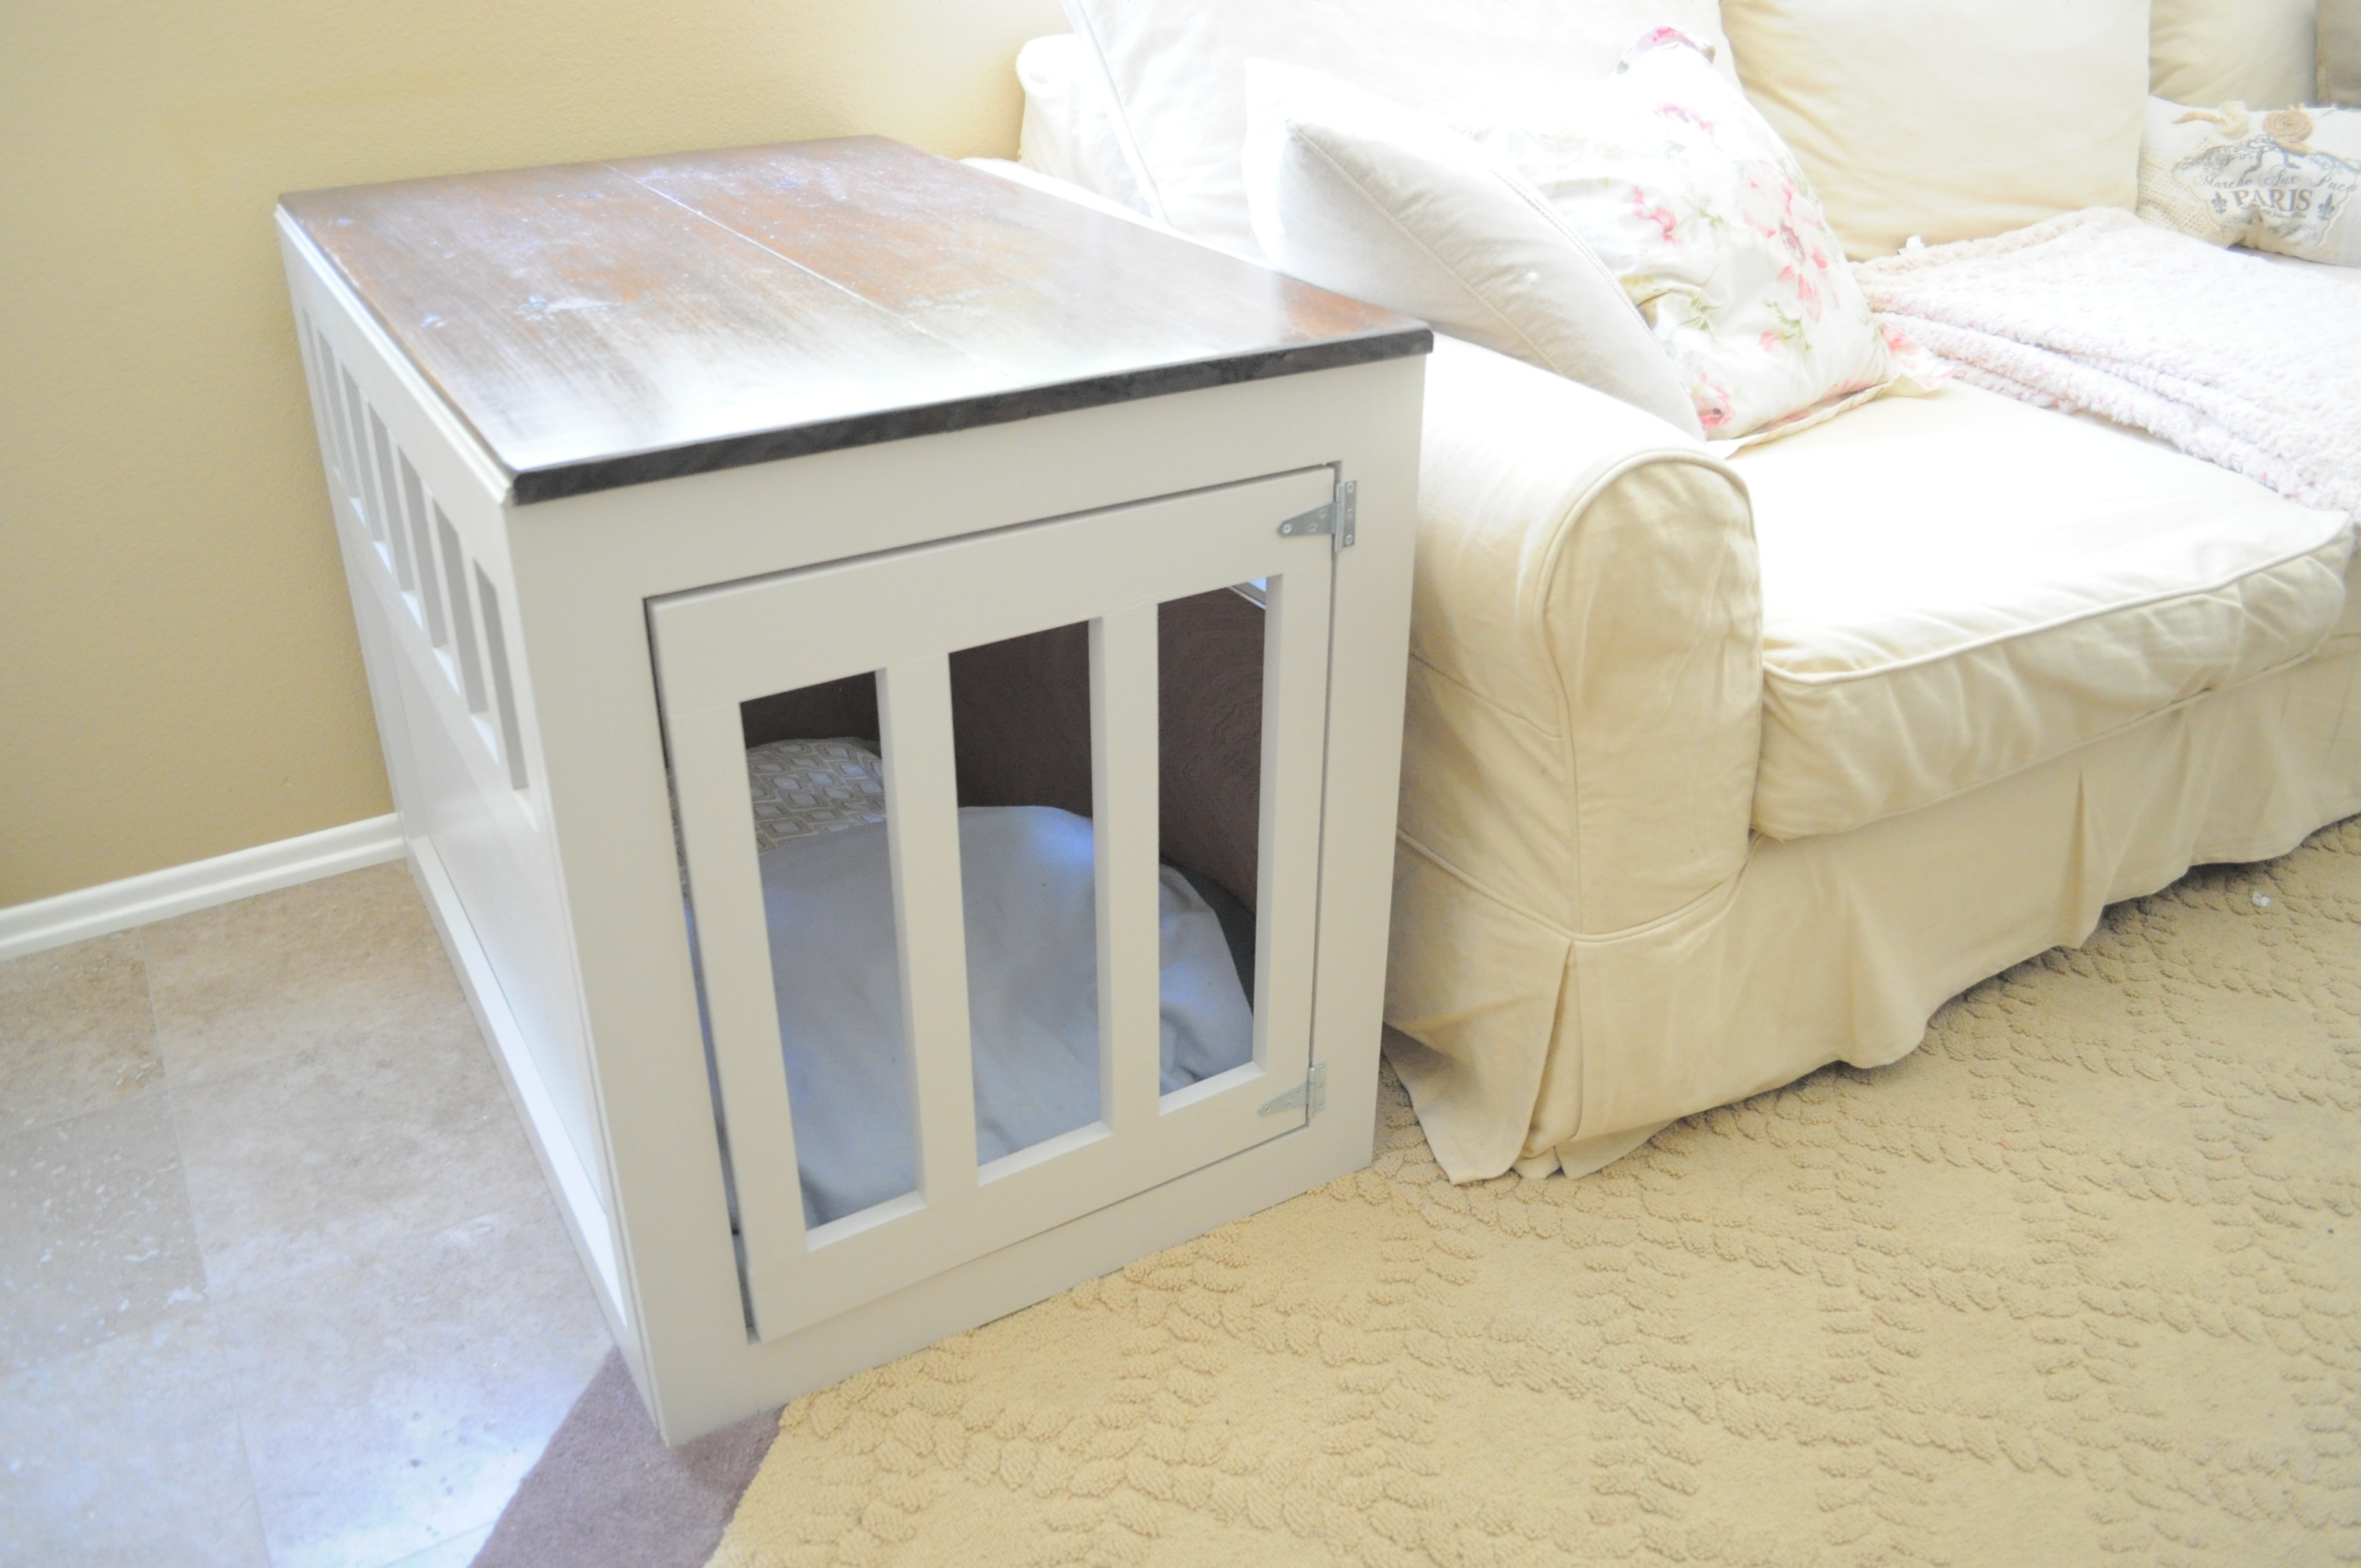 dog crate end table white paristriptips design wooden plans three coffee tables mirrored ott vintage etsy designer lamps ashley select furniture french style armchair sofa behind